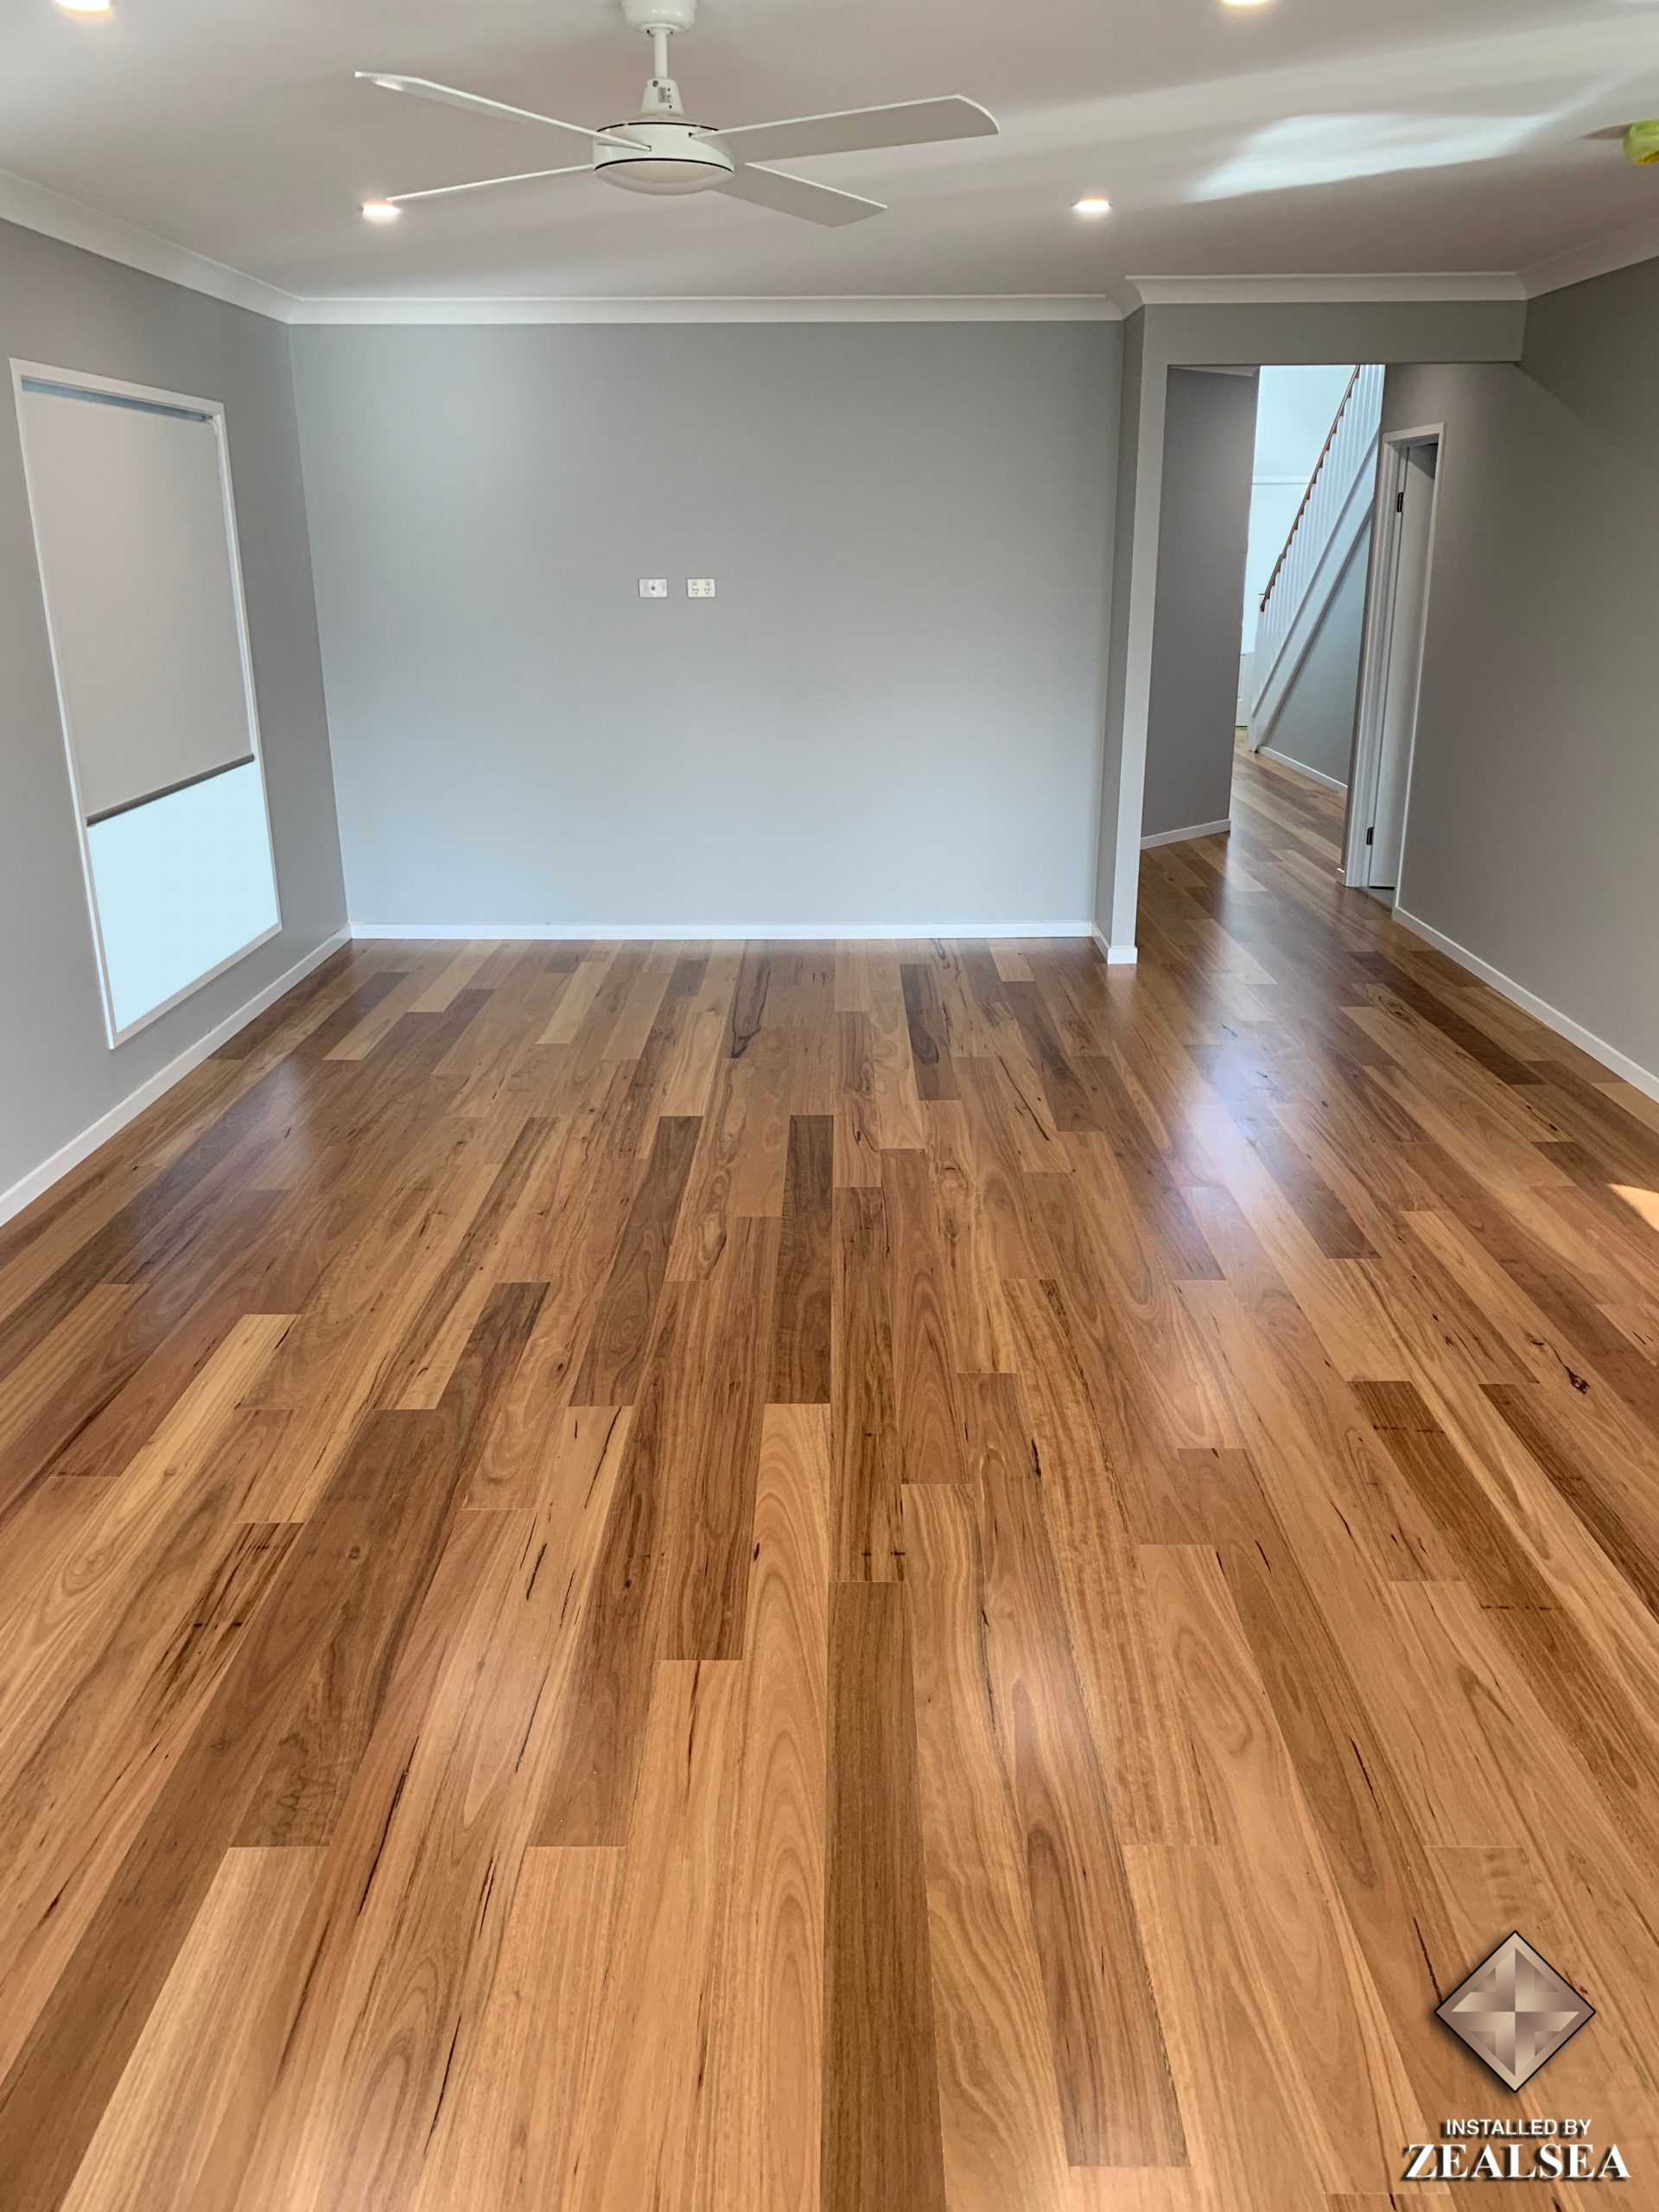 zealsea timber flooring professional installation oxley boral blackbutt 4 scaled